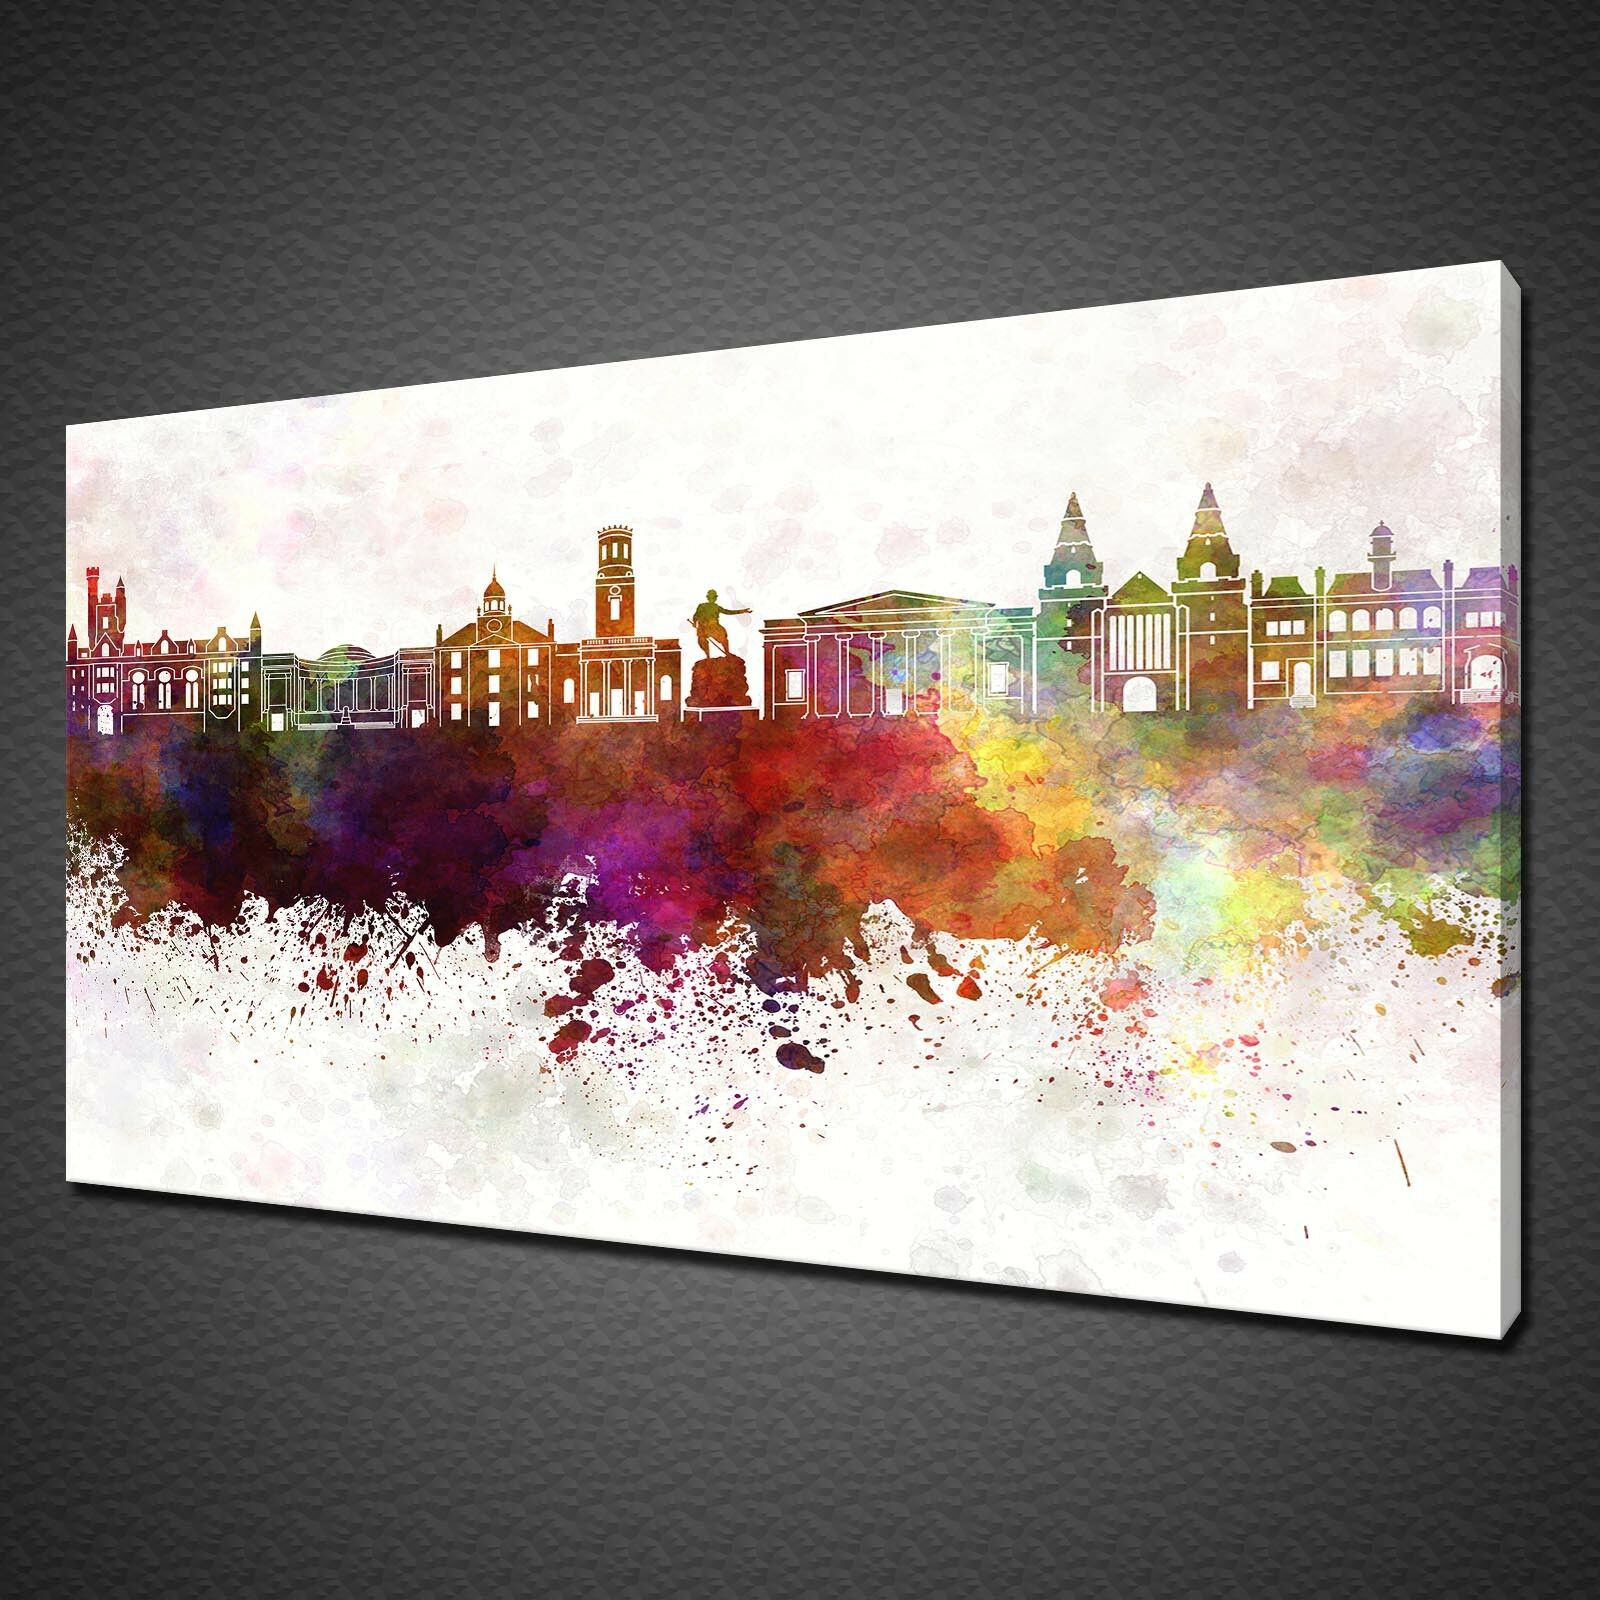 SKYLINE ABERDEEN WATERCOLOUR PAINT STYLE CANVAS PRINT WALL ART PICTURE PHOTO